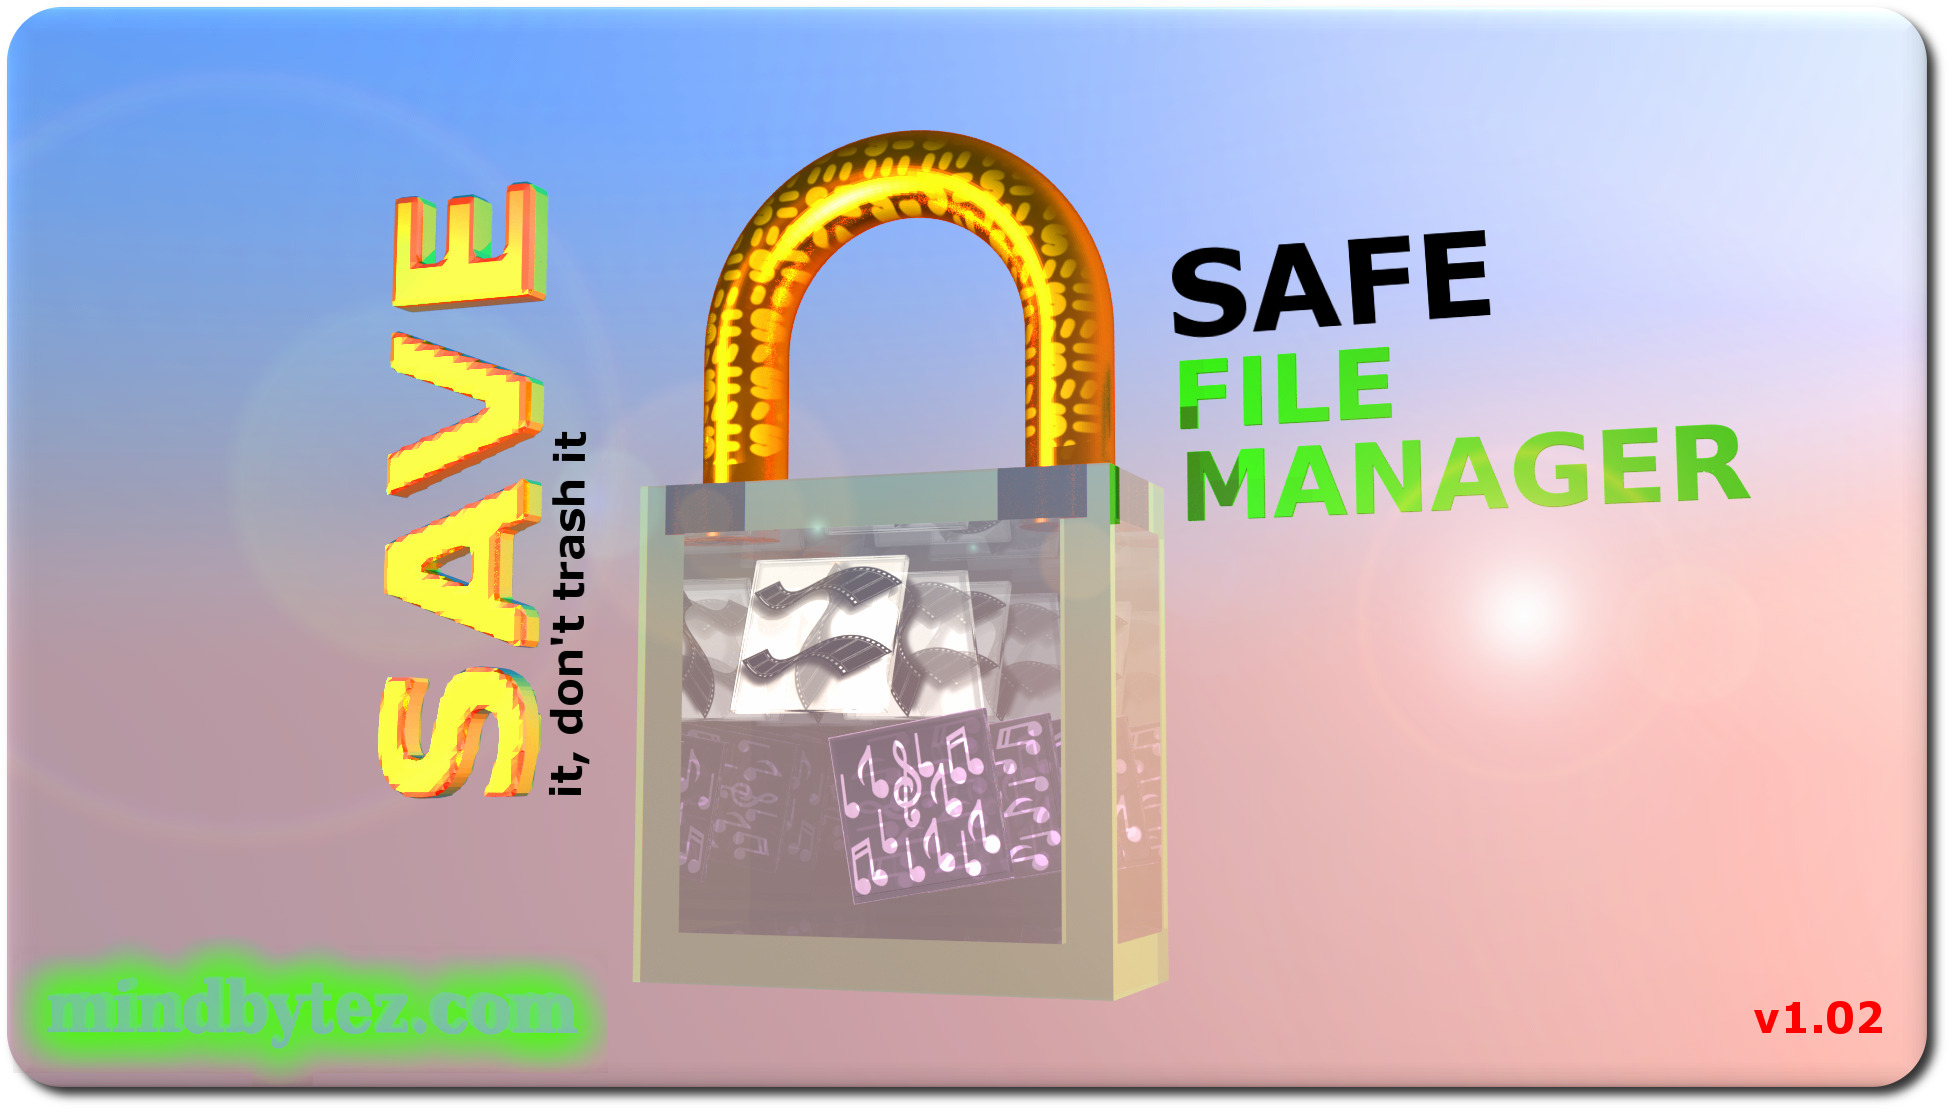 SFM (SafeFileManager)